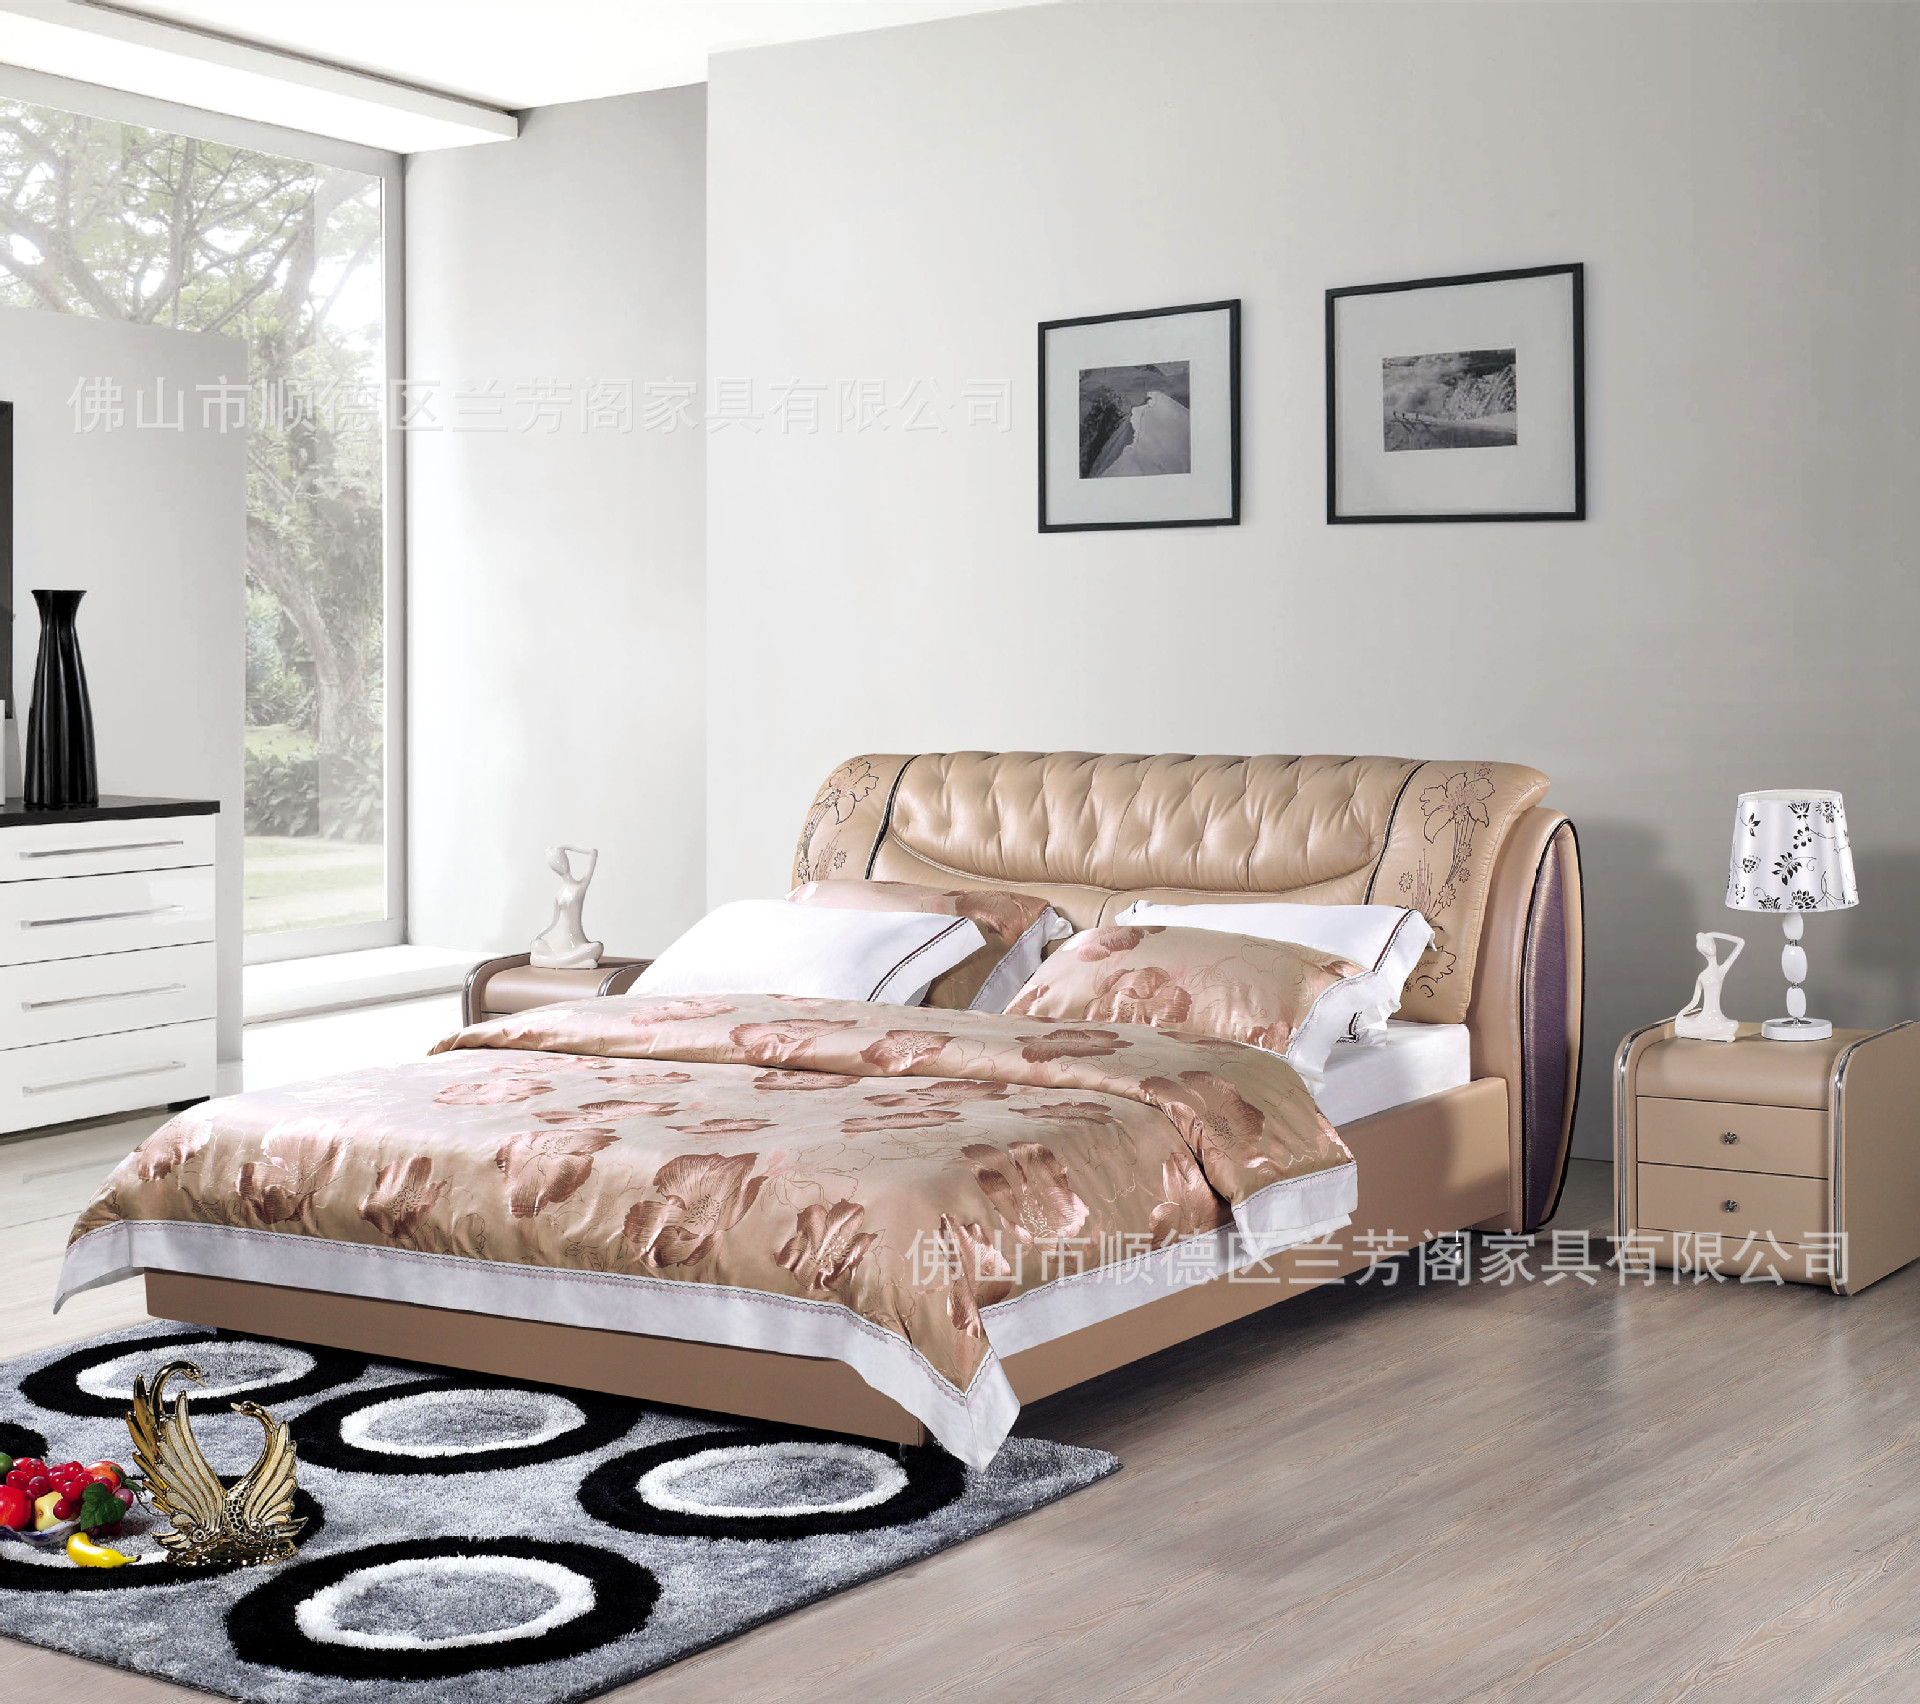 Embroidered bed soft leather special bed Foshan furniture factory direct sales of furniture(China (Mainland))